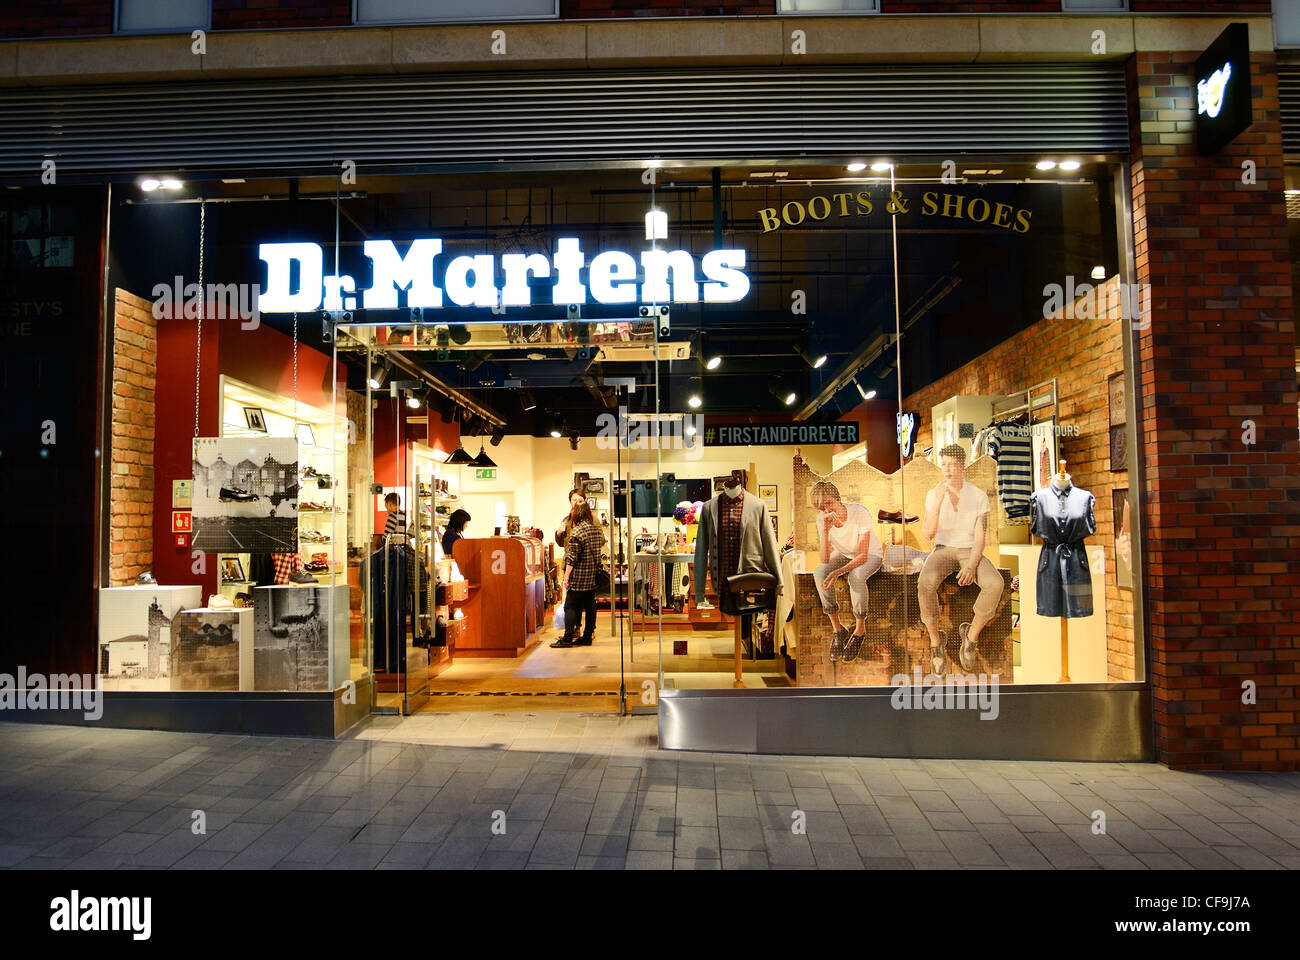 30a1a2c2f7 Dr. Martens store in Liverpool One Stock Photo: 43852462 - Alamy